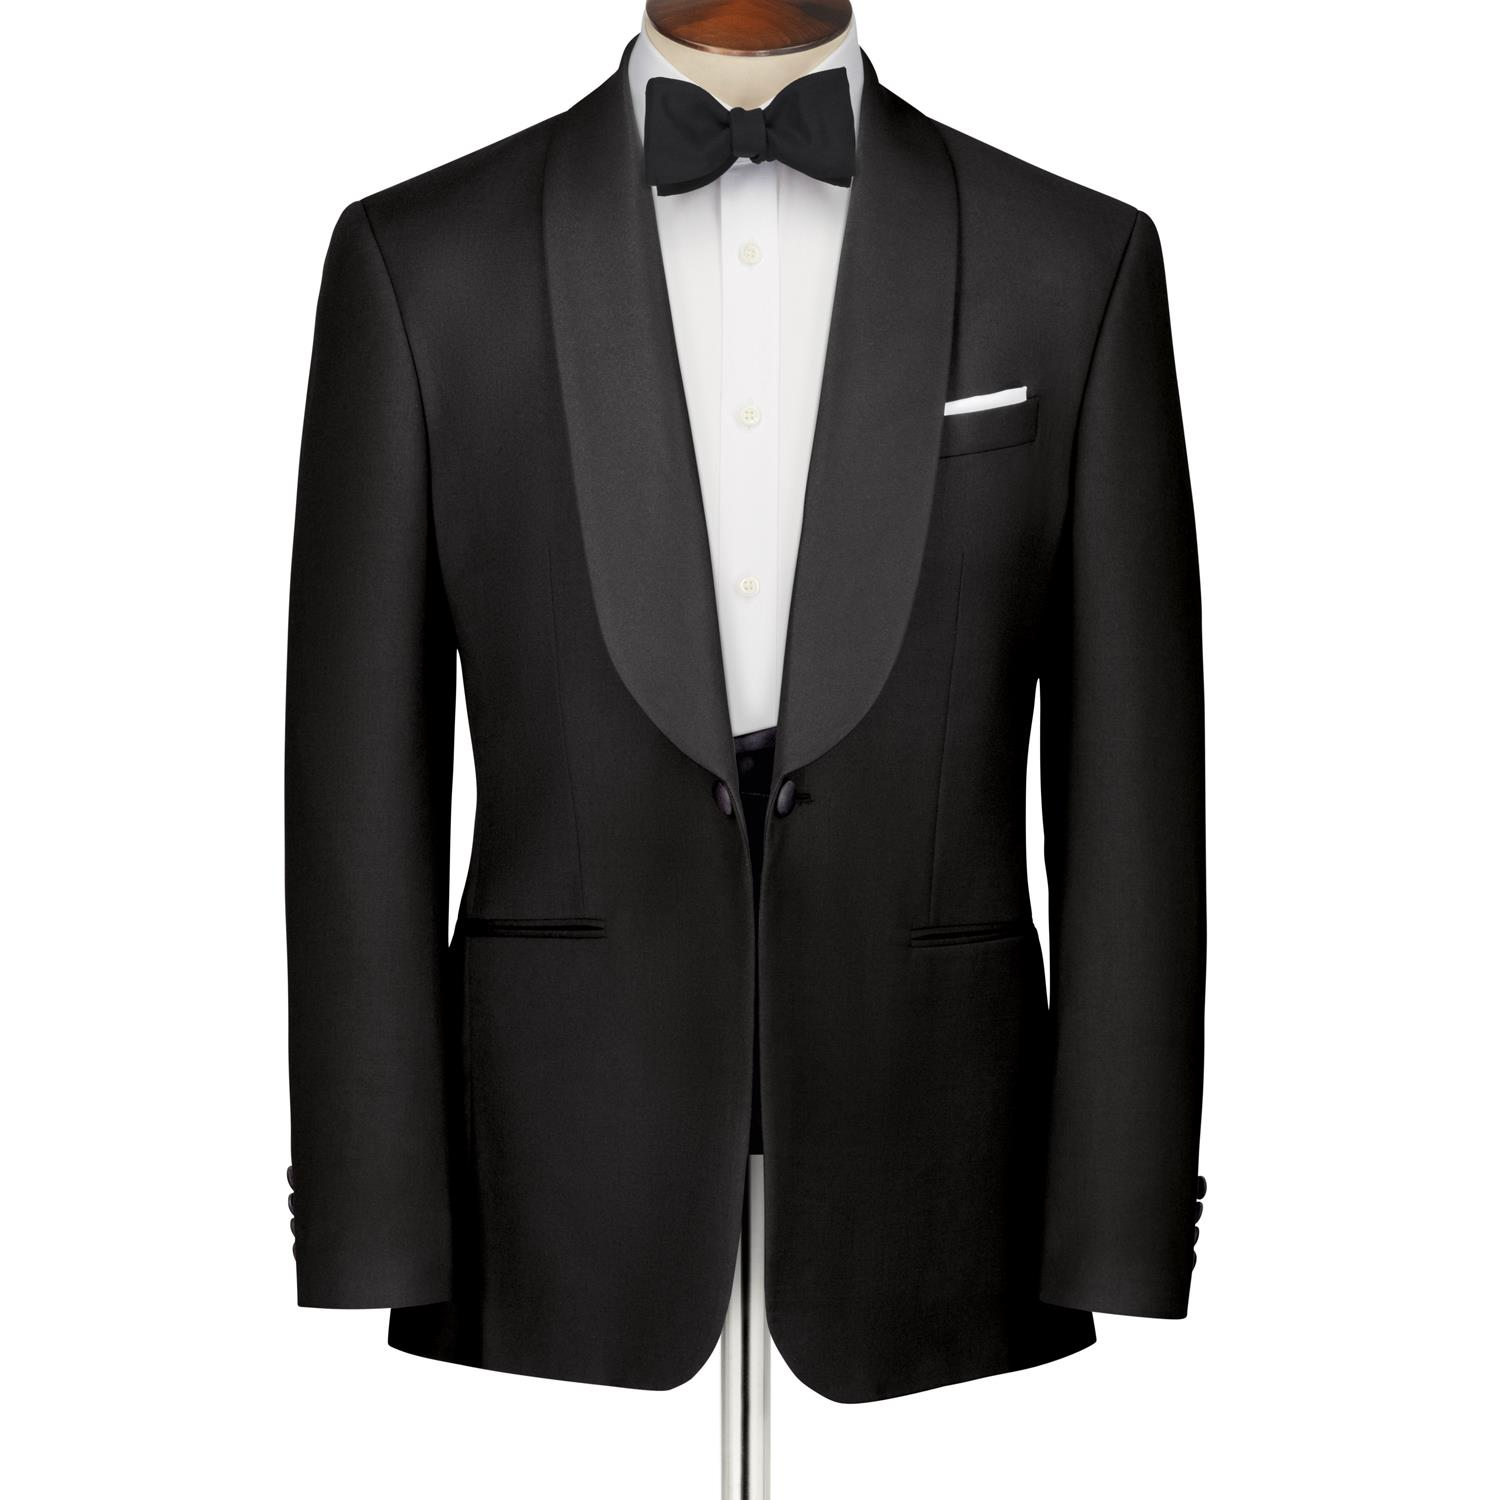 Black slim fit shawl collar tuxedo jacket